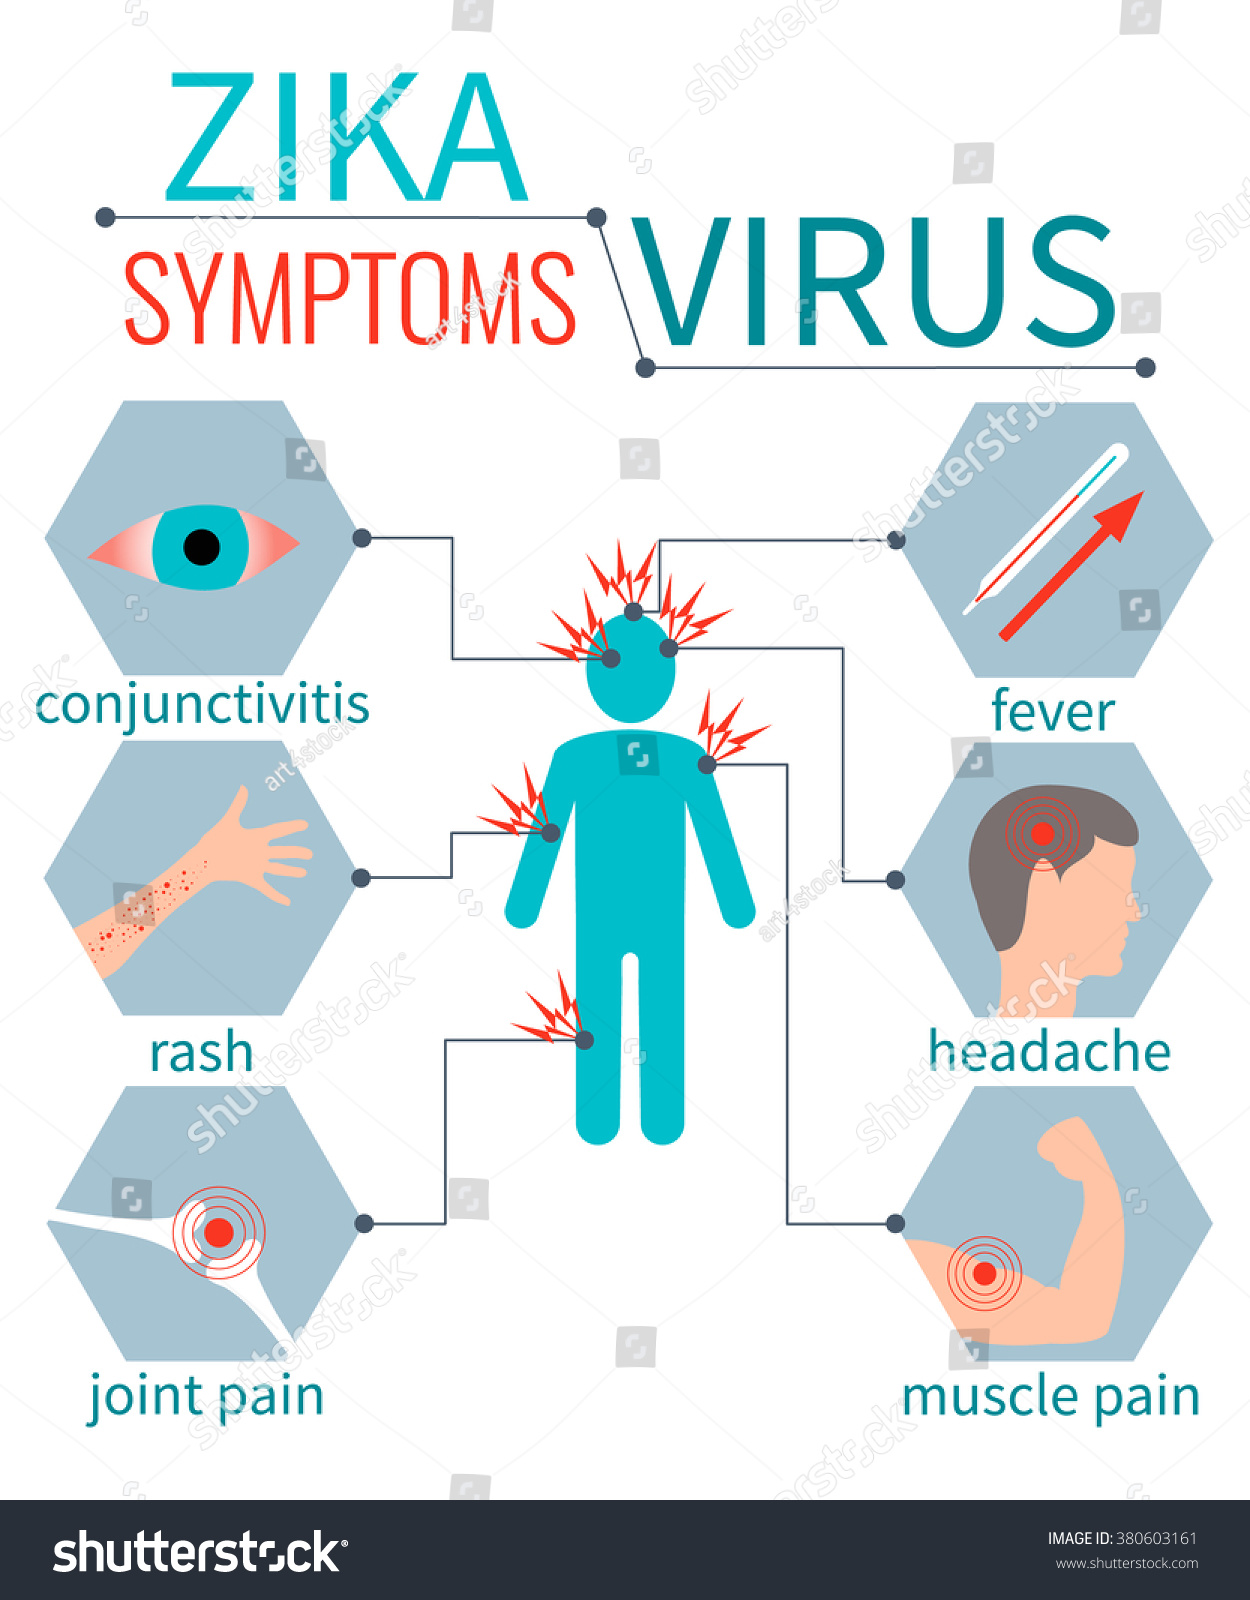 zika virus symptom icons fever headachemuscle stock vector 380603161